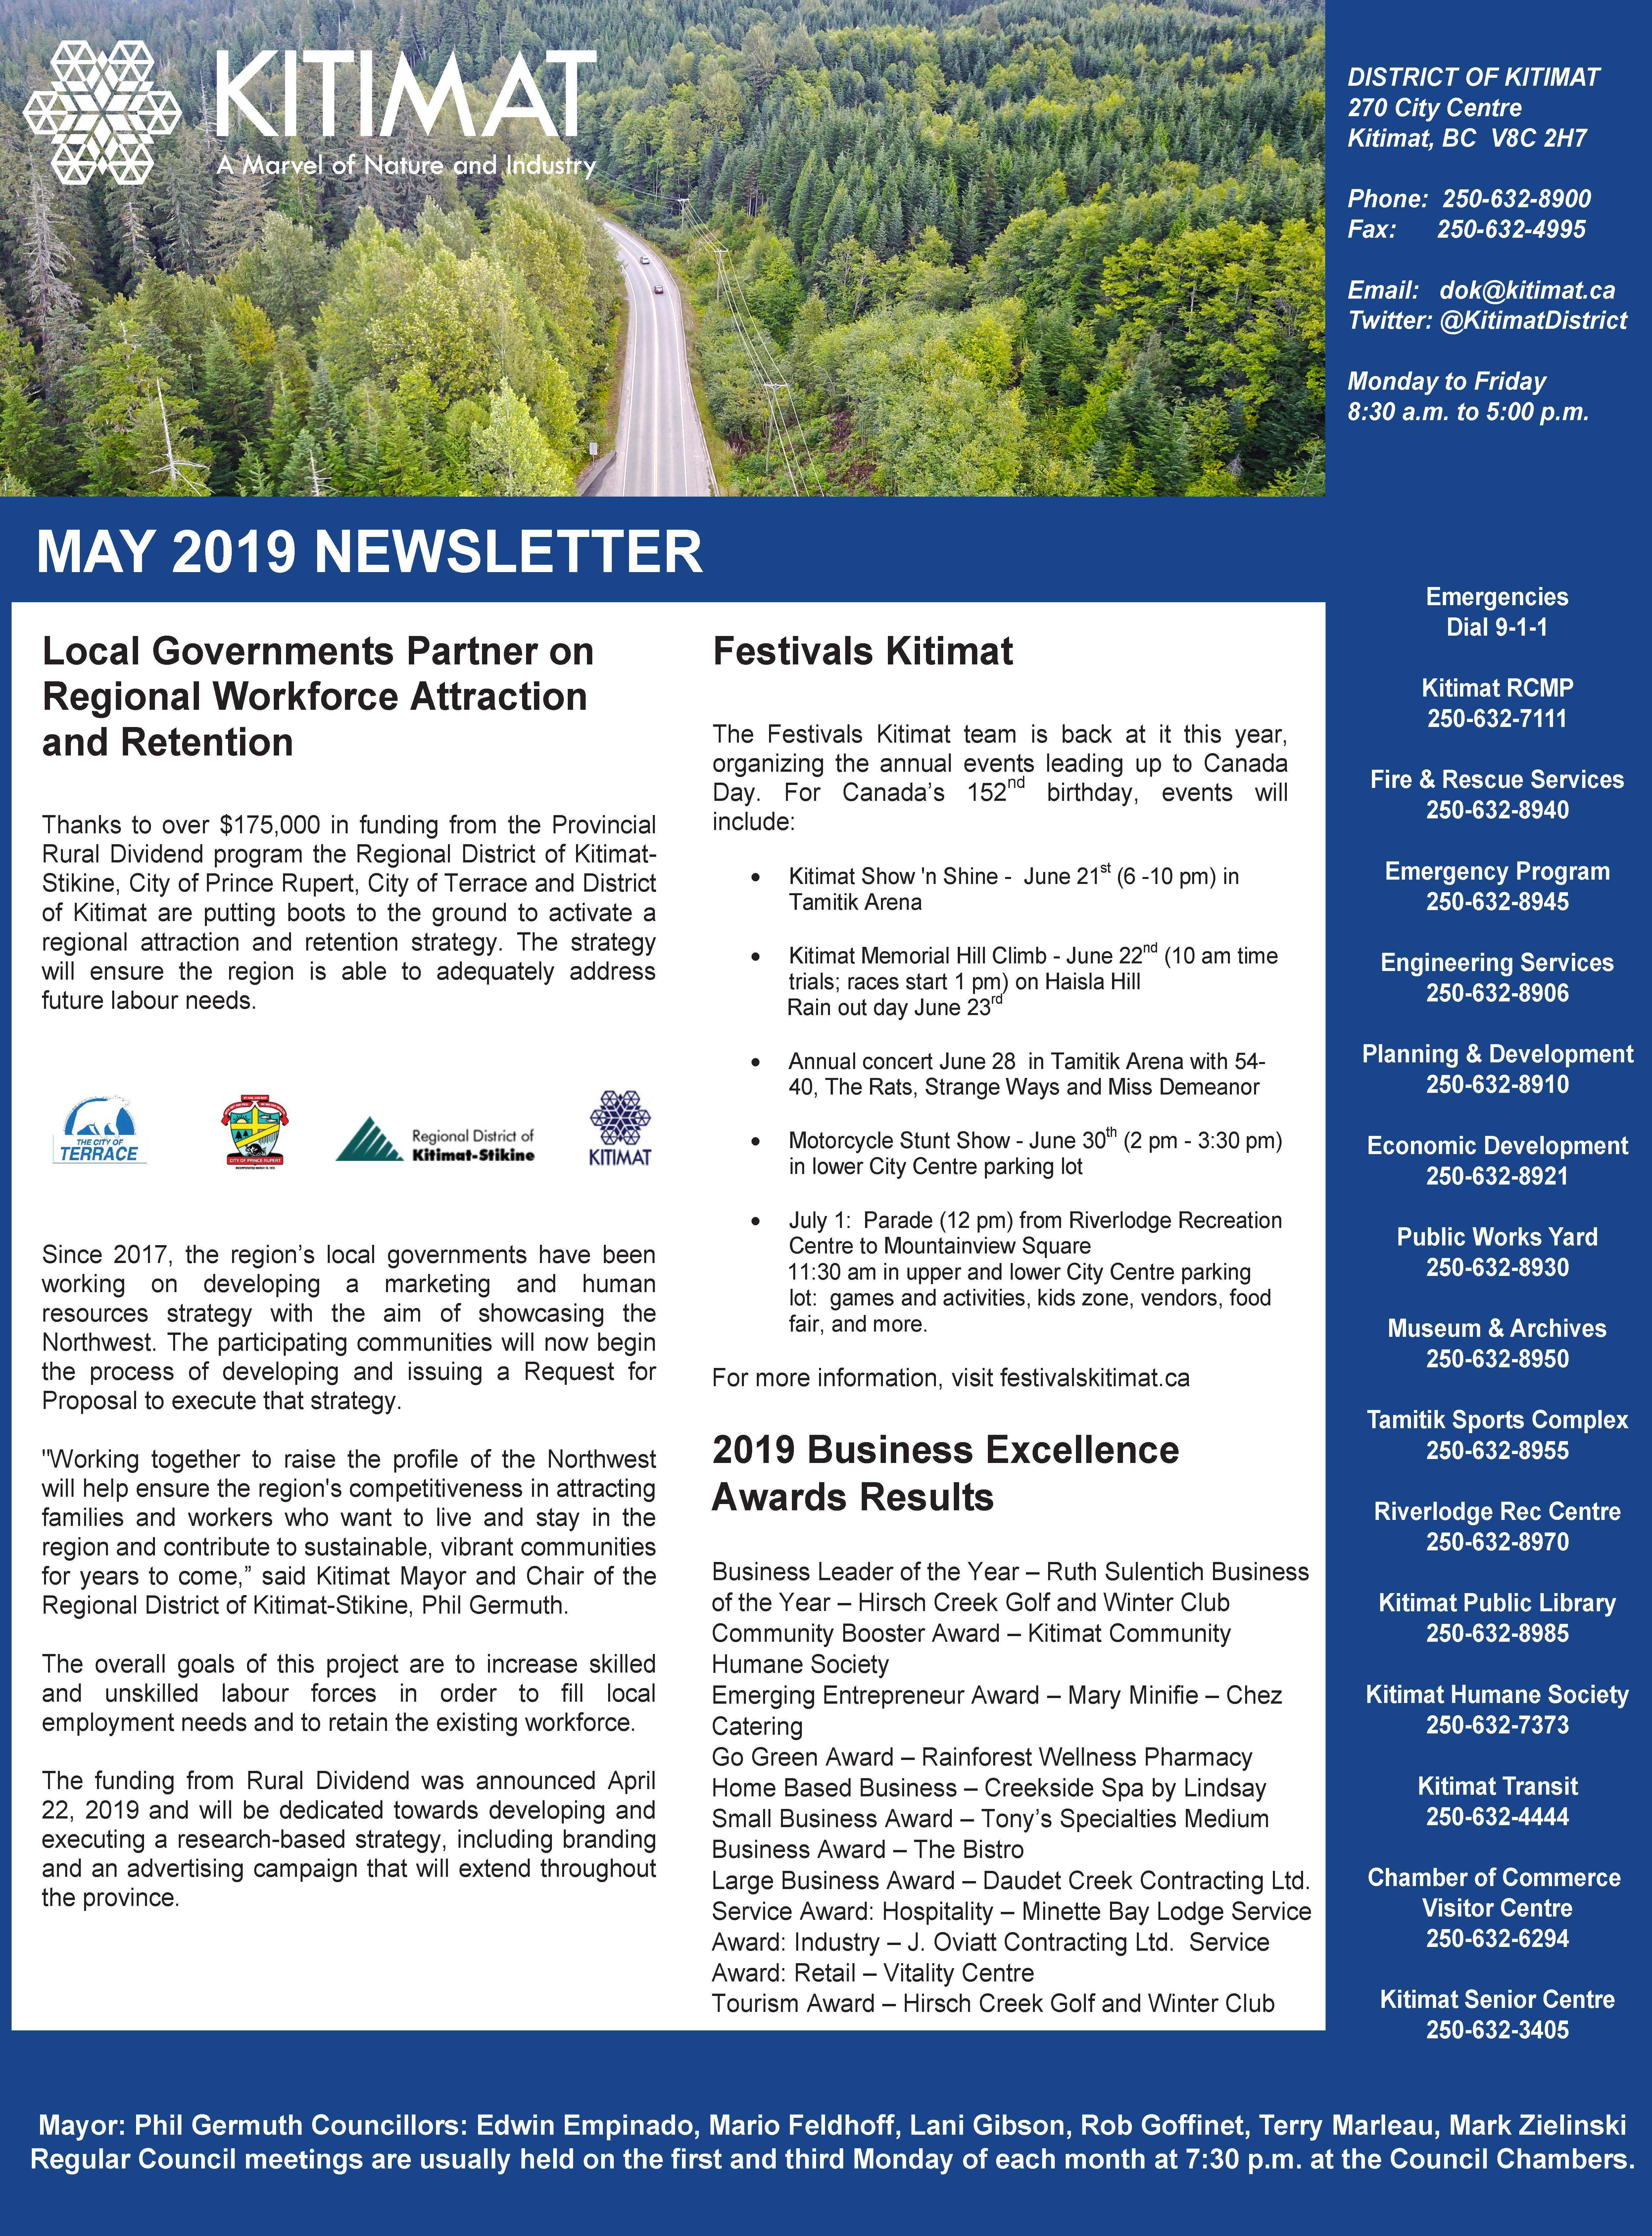 May 2019 DOK Newsletter